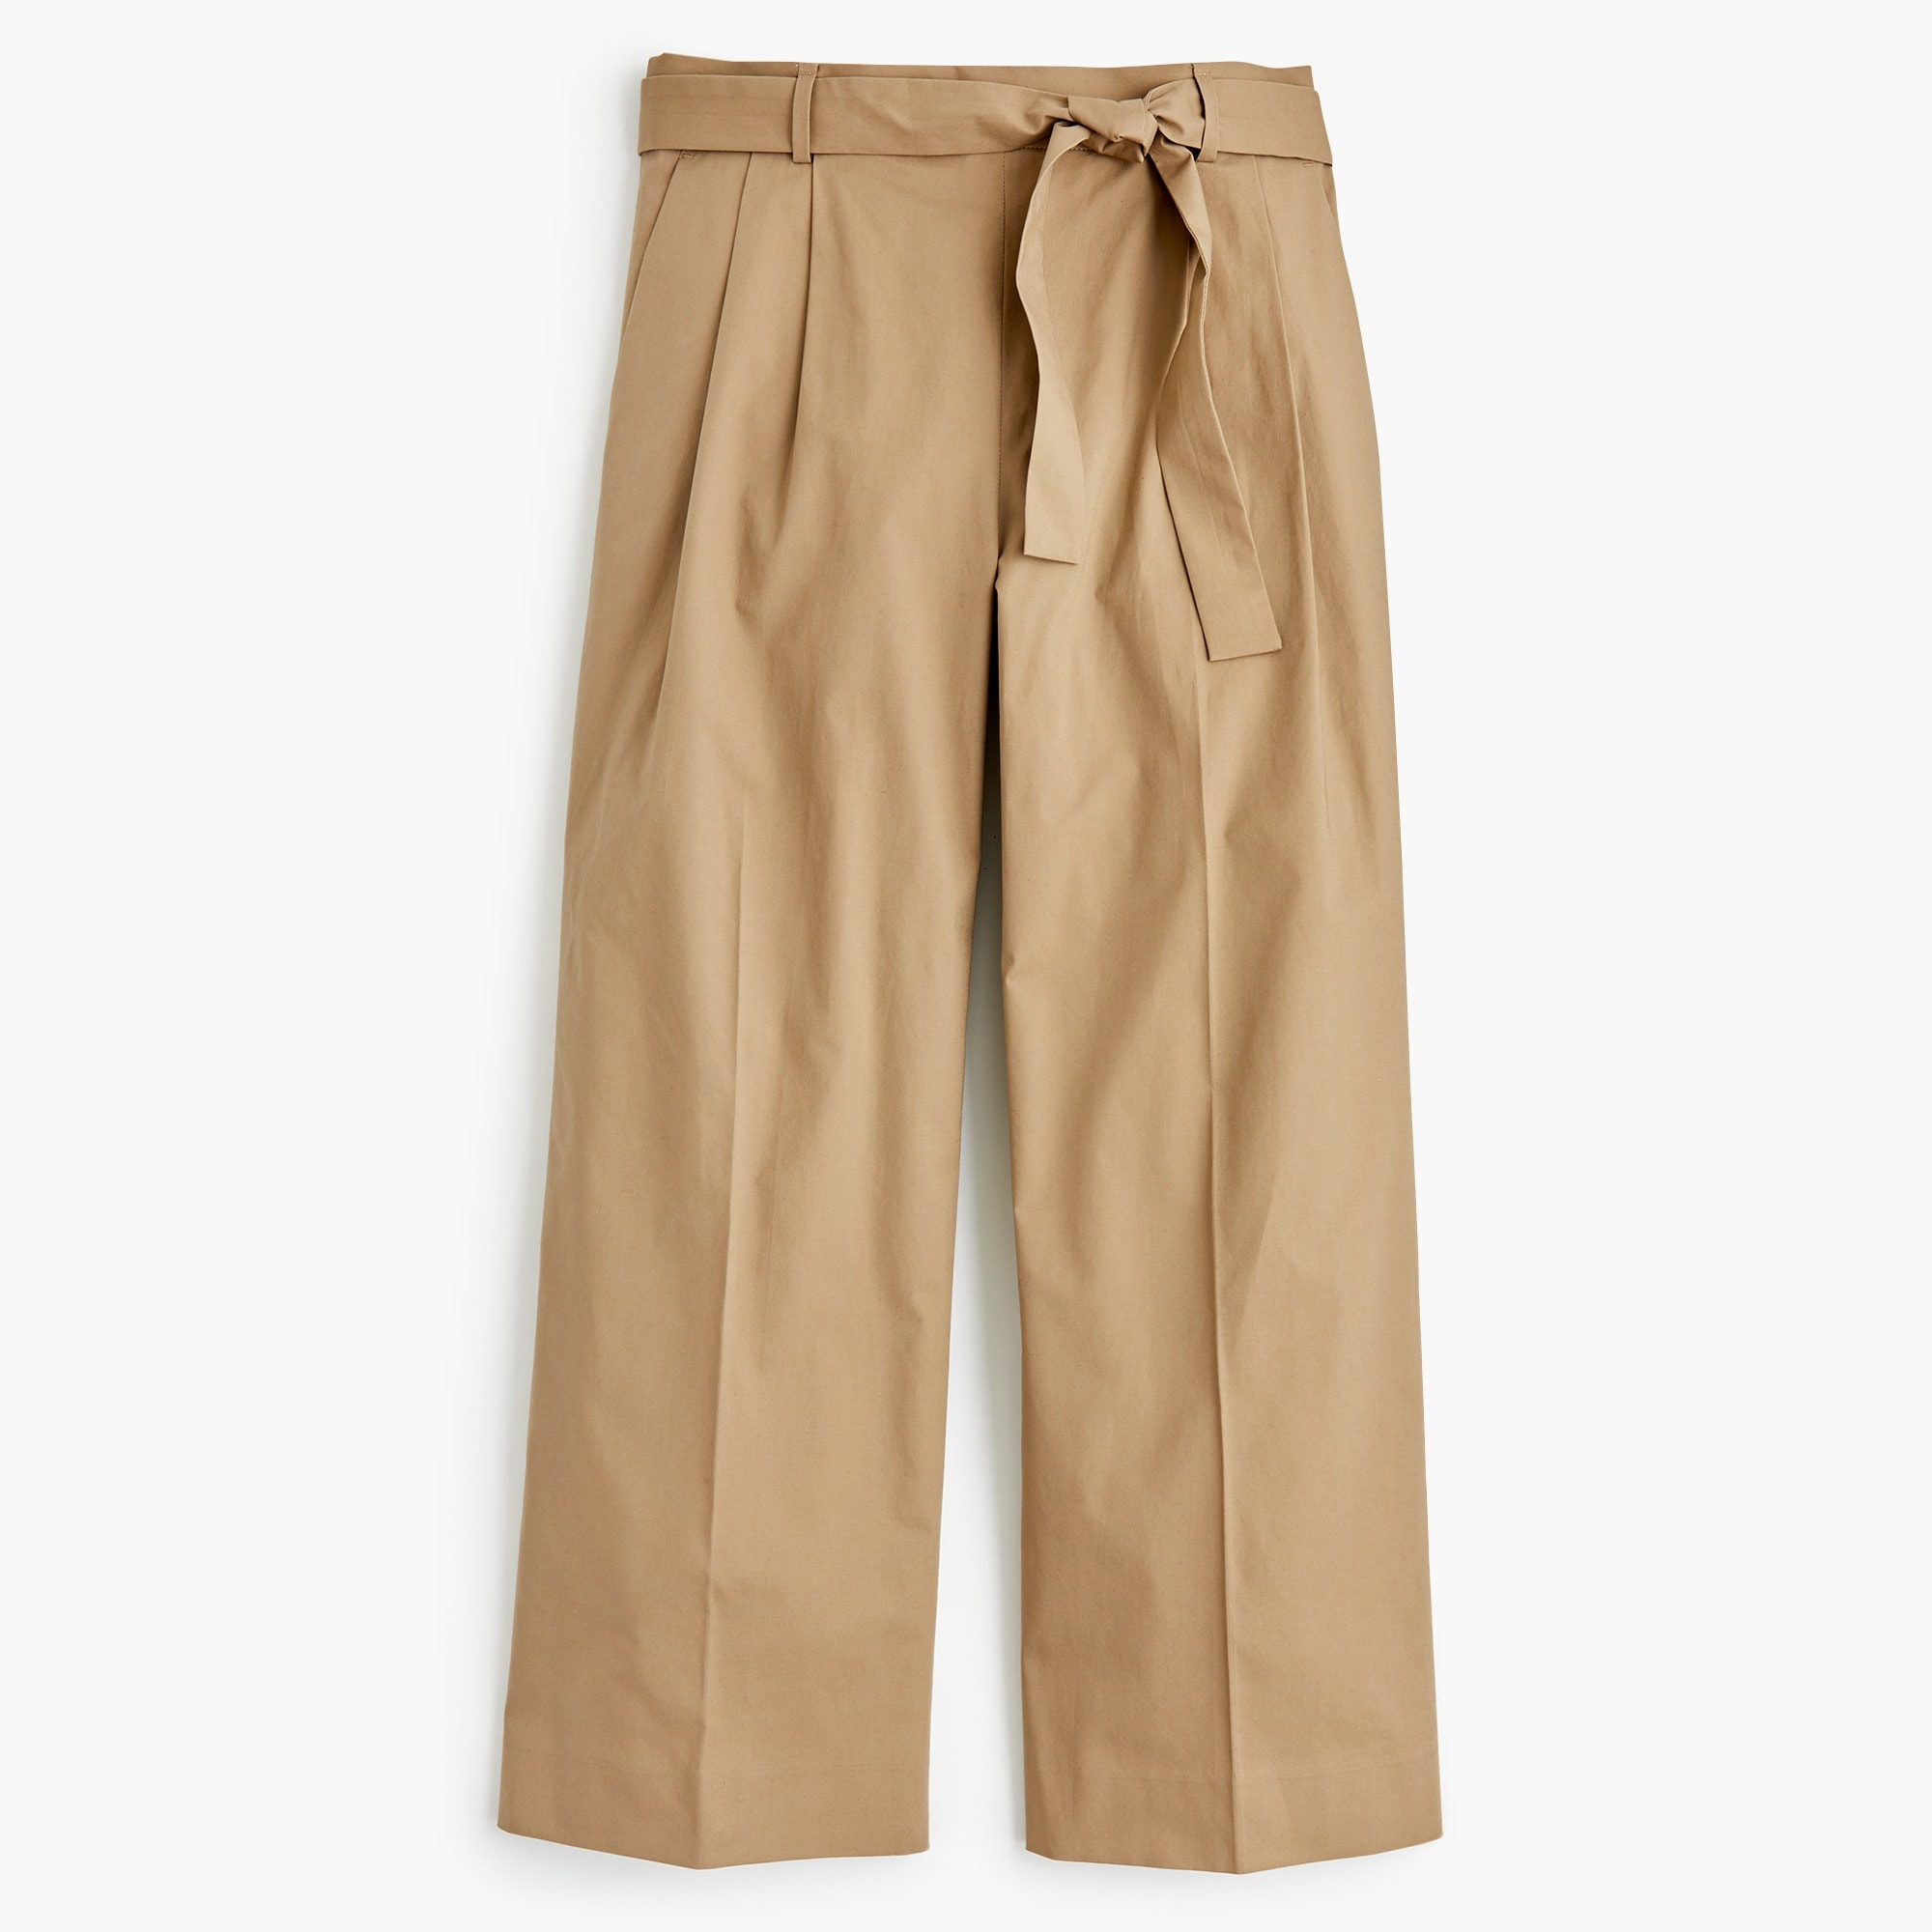 Image 4 for Tall wide-leg cropped pant in cotton-poplin